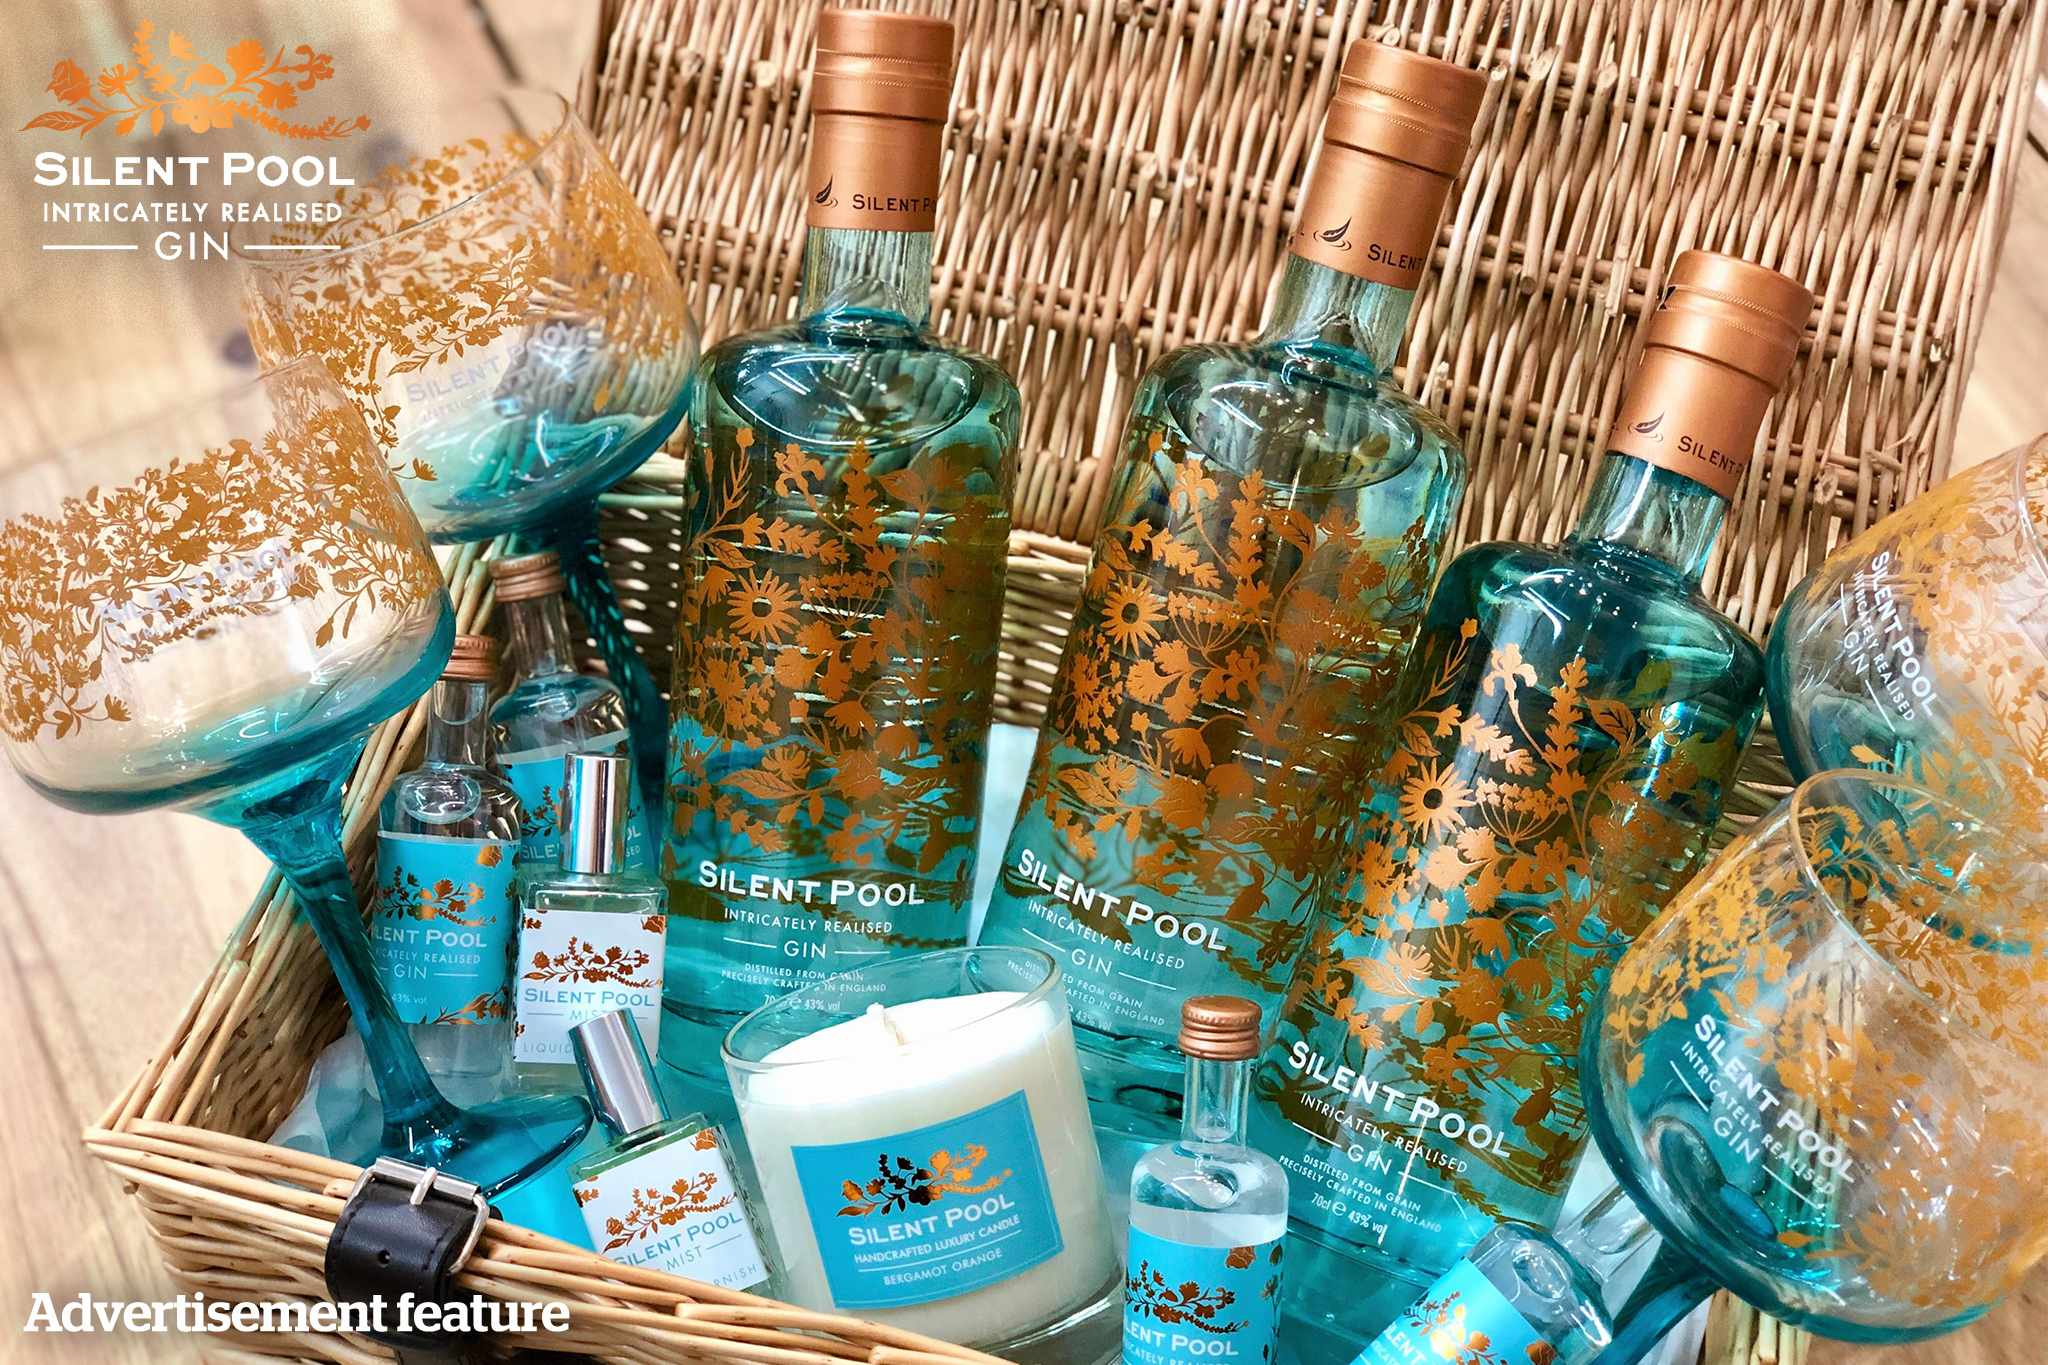 Hamper from Silent Pool Gin